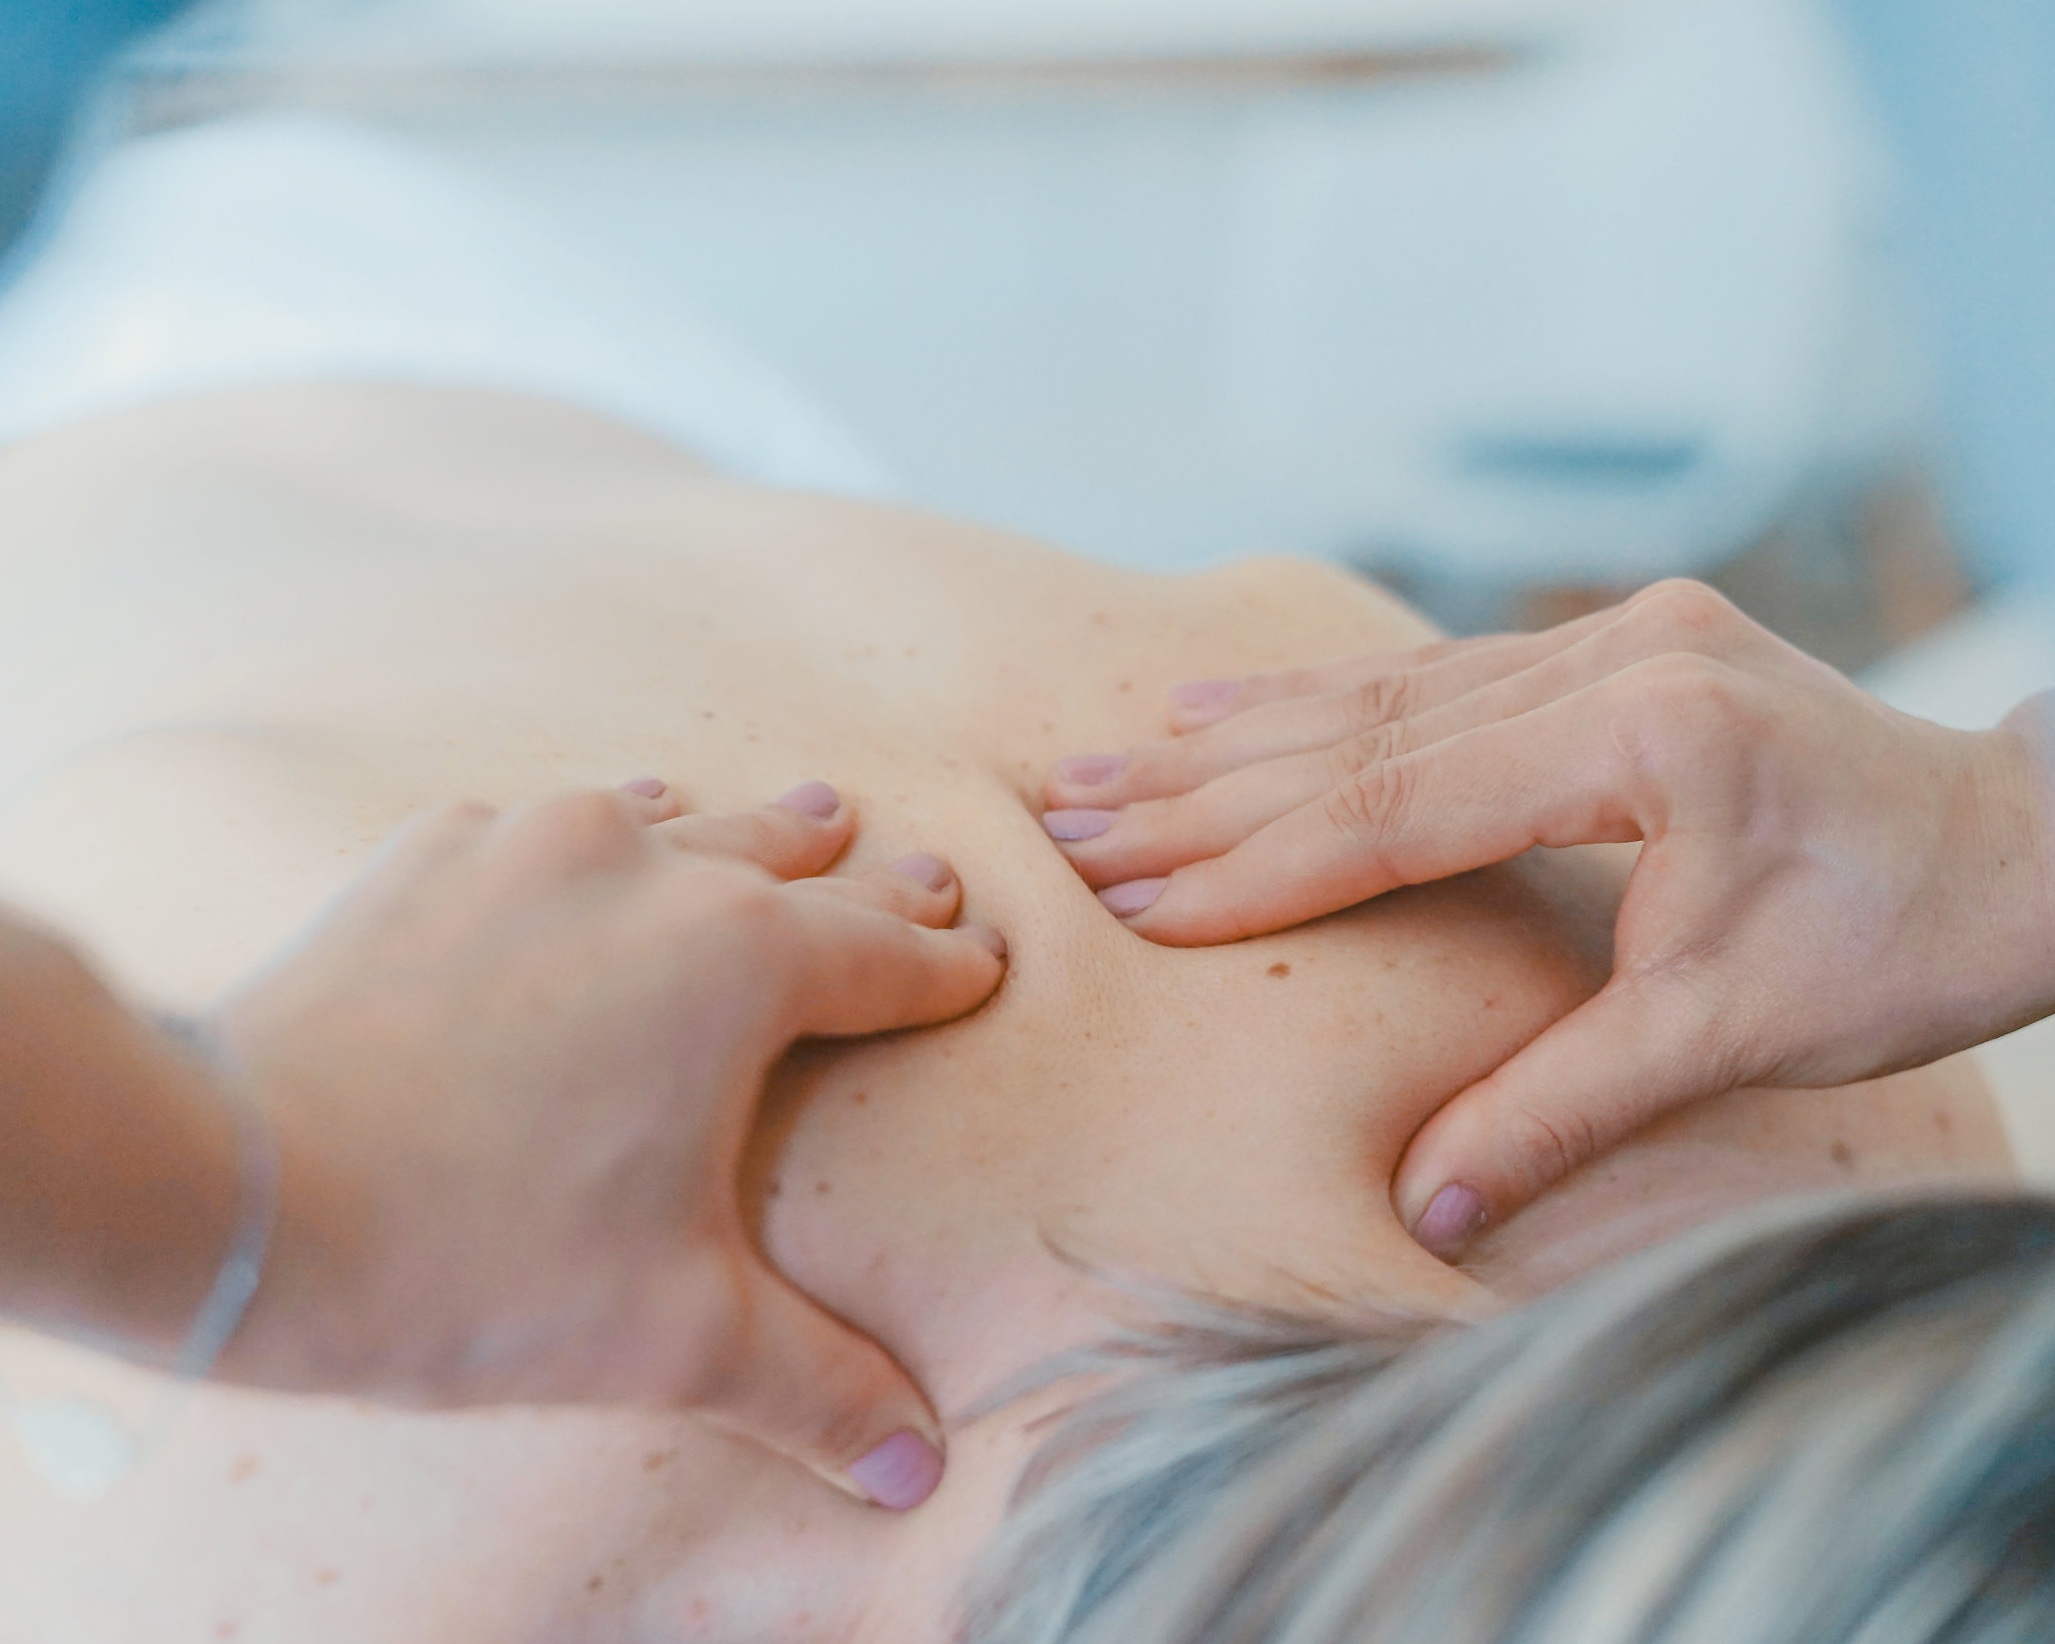 RMT  Massage therapy is the manipulation of soft tissues of the body including, muscles, connective tissues, tendons, ligaments and joints. Can be used to reduce muscle tension or attain relief from chronic pain as well as improve range of motion and mobility in muscles and joints.